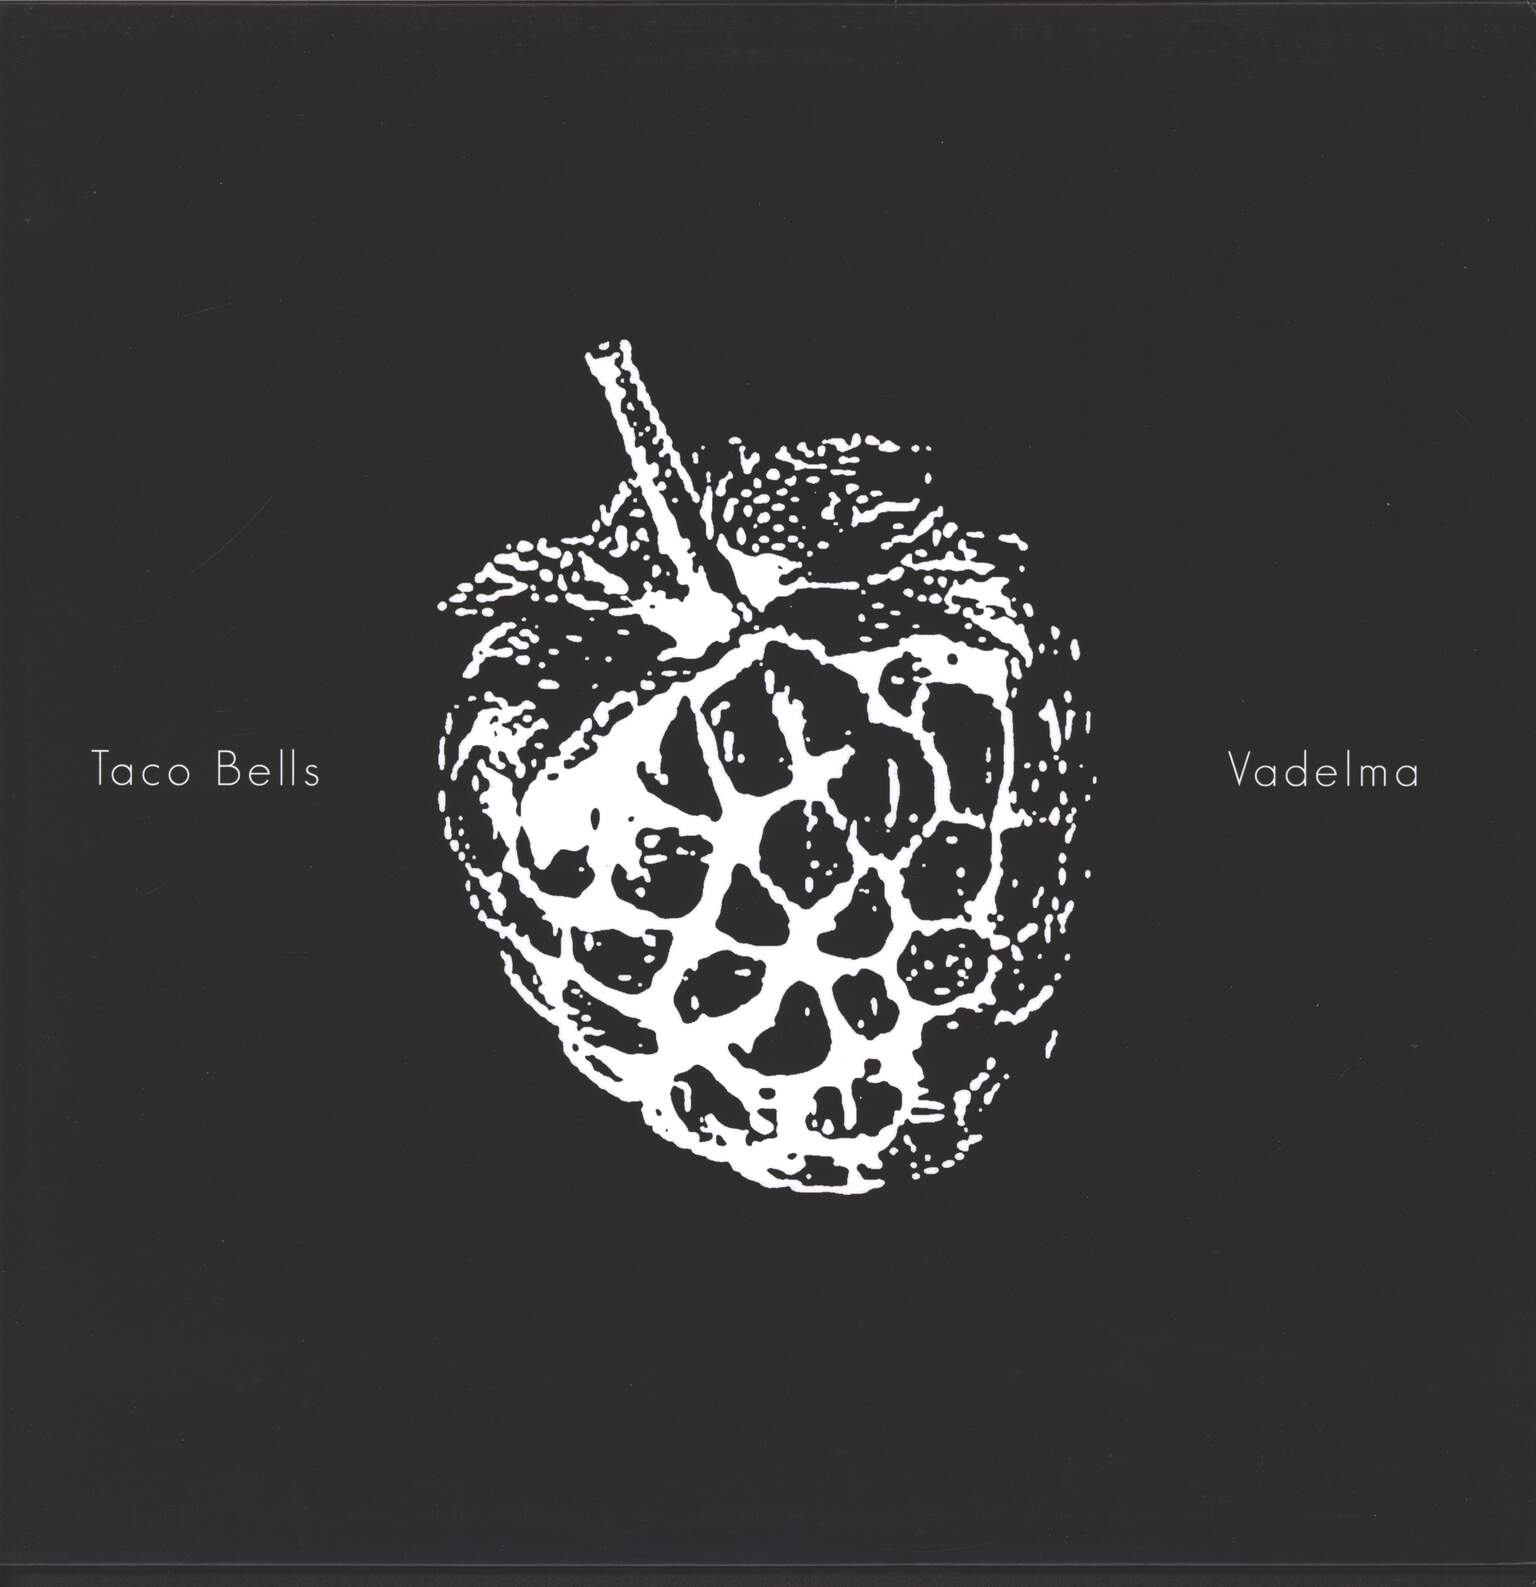 Taco Bells: Vadelma/Hawaii, LP (Vinyl)